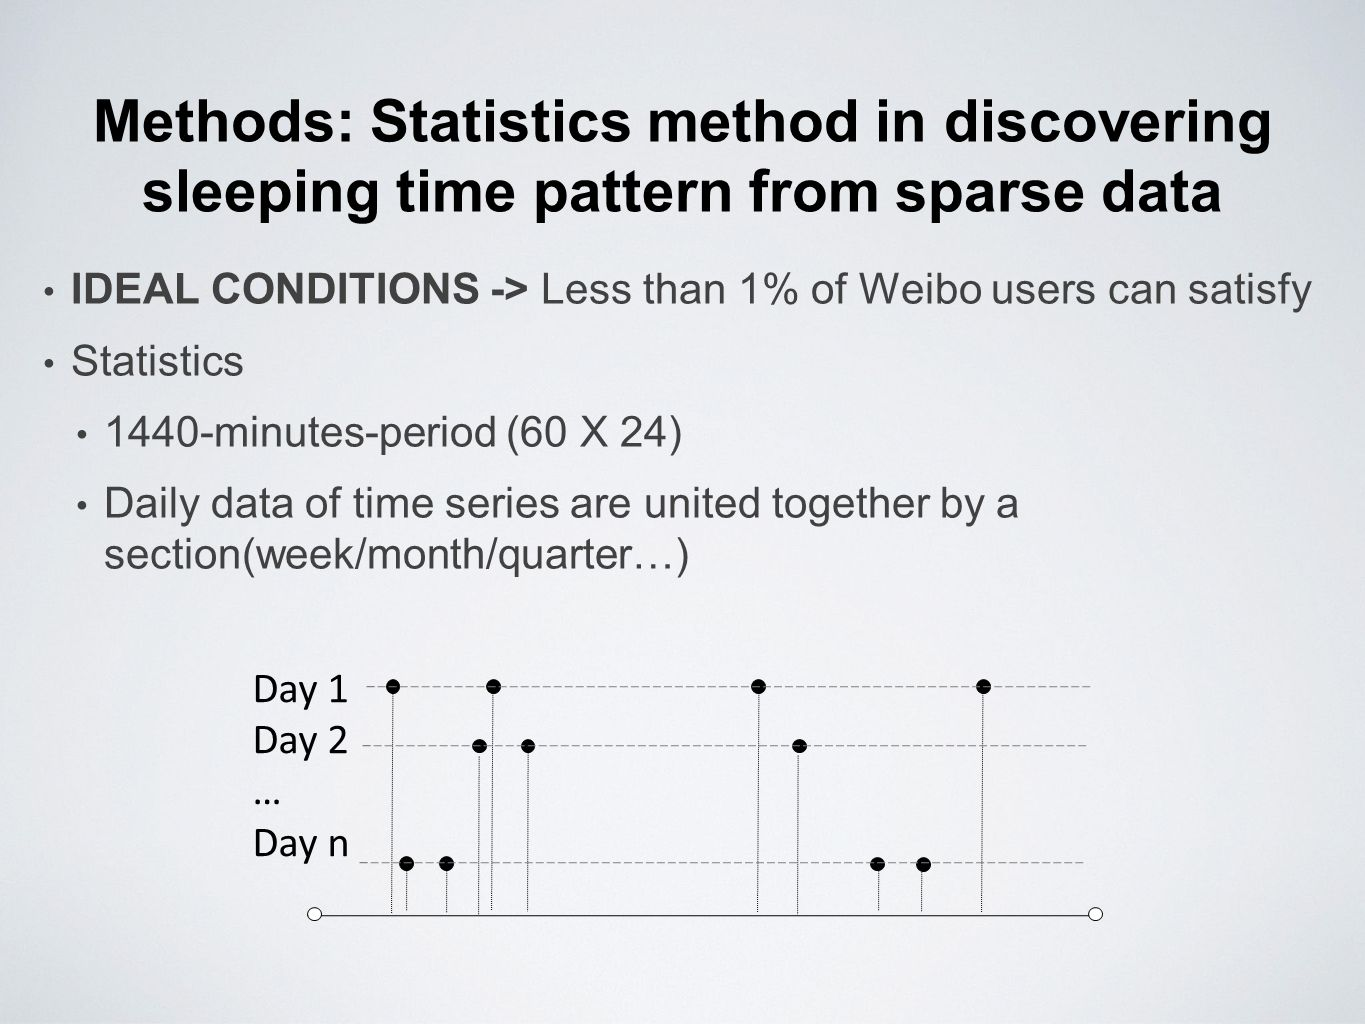 Methods: Statistics method in discovering sleeping time pattern from sparse data IDEAL CONDITIONS -> Less than 1% of Weibo users can satisfy Statistics 1440-minutes-period (60 X 24) Daily data of time series are united together by a section(week/month/quarter…) Day 1 Day 2 … Day n